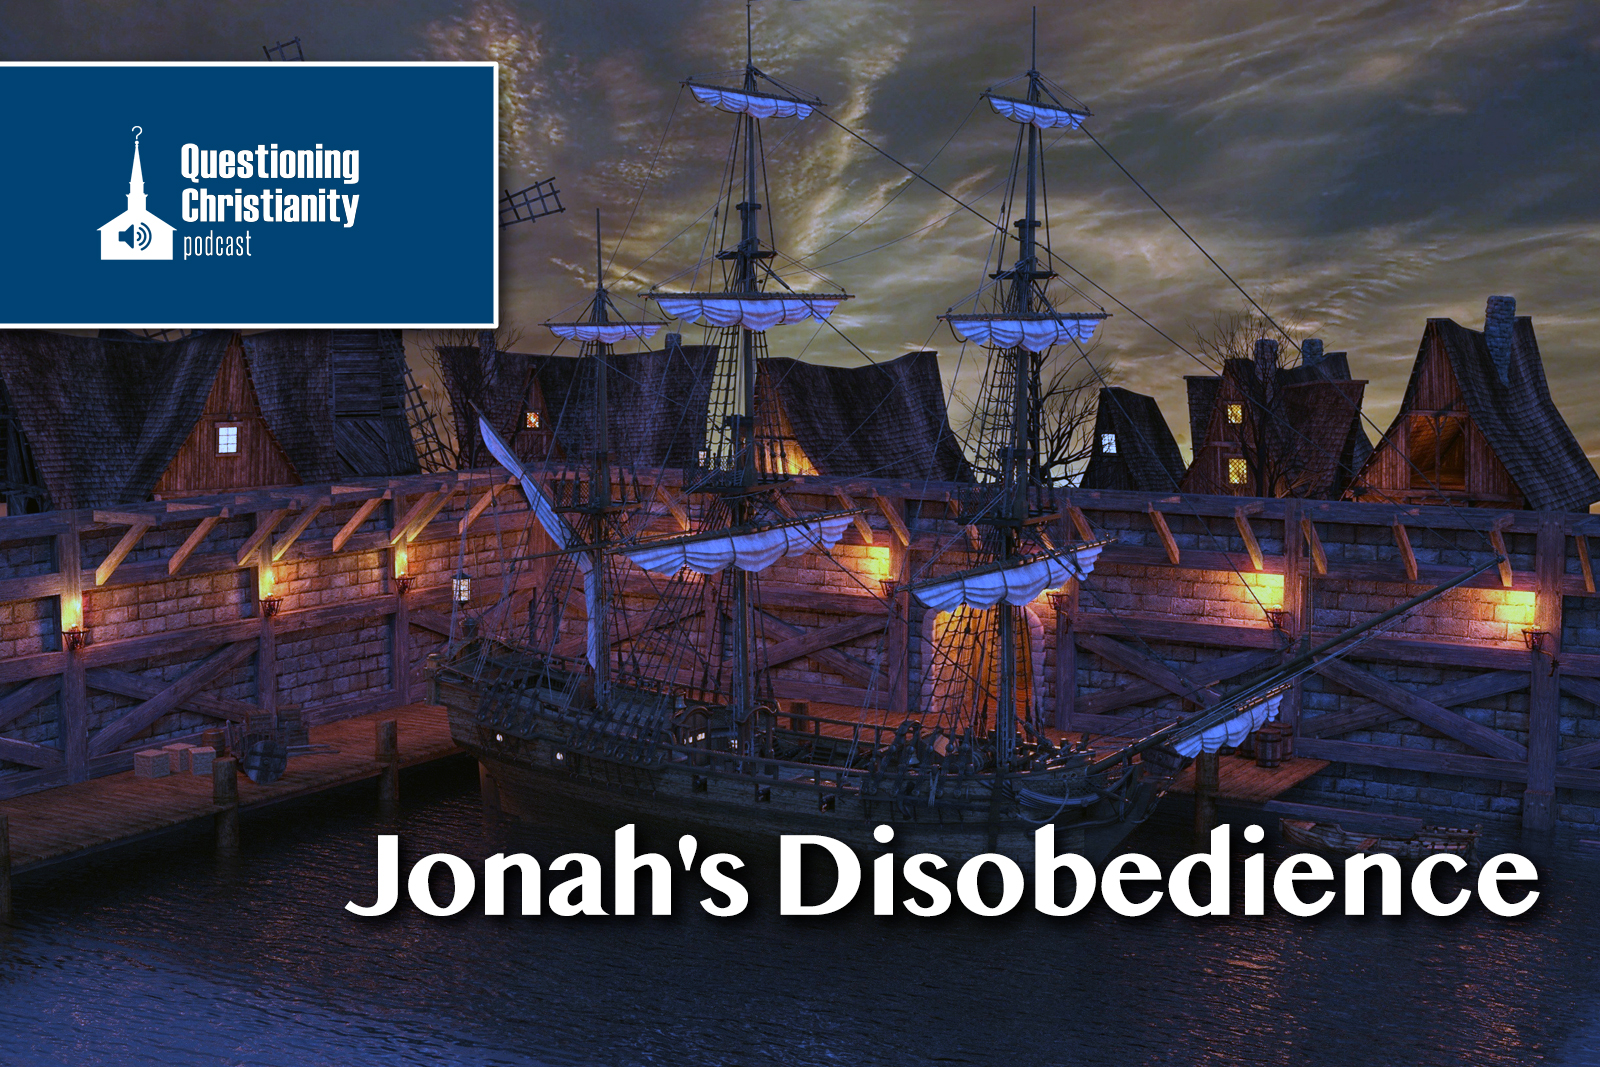 Questioning Christianity Podcast - Jonah's Disobedience